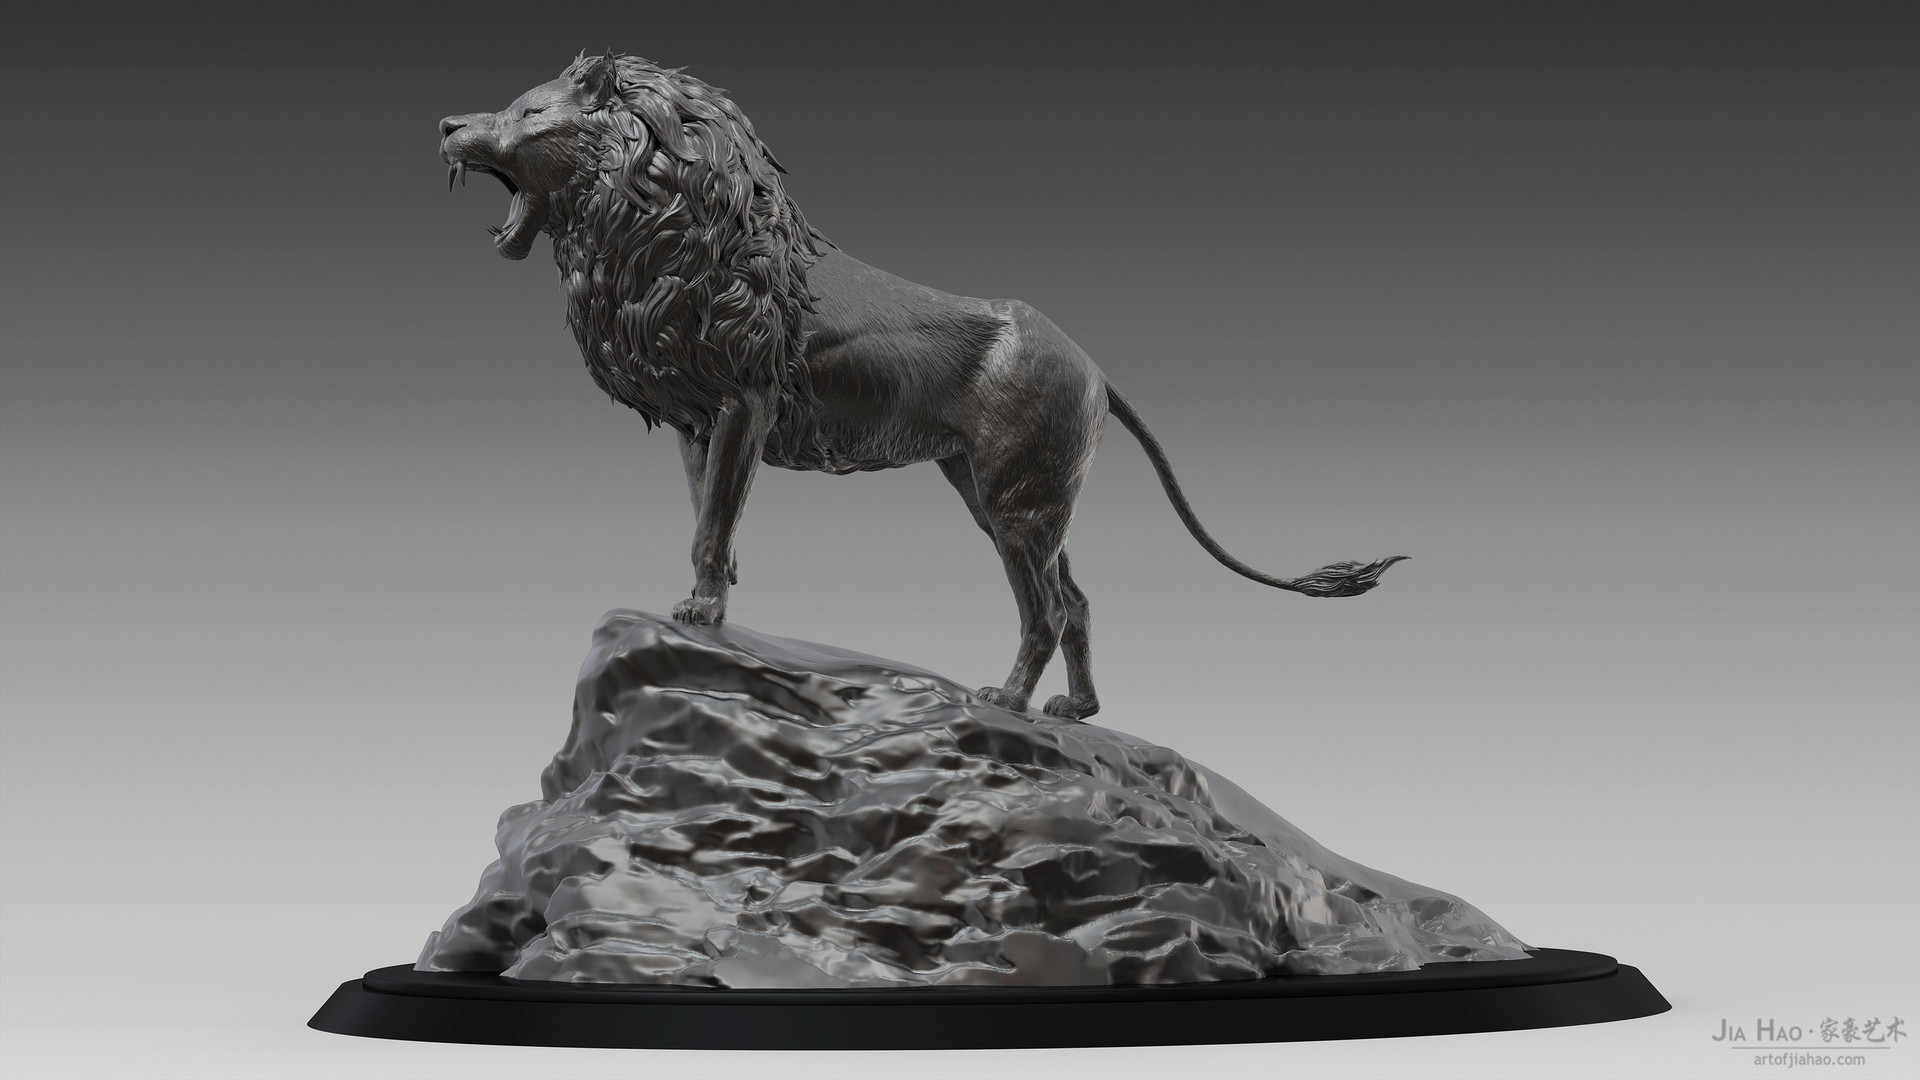 Jia hao lion digitalsculpture 01 02